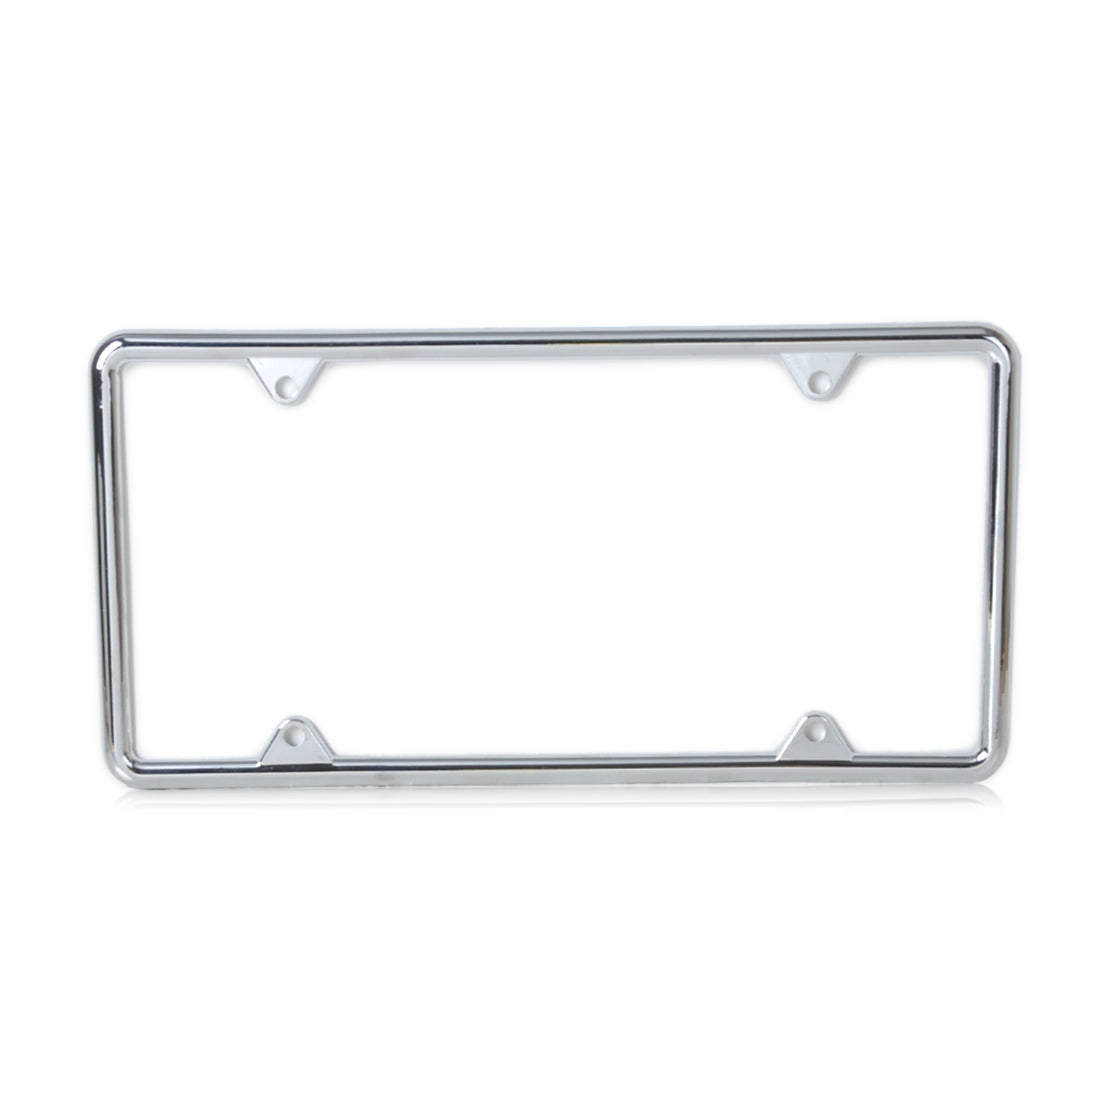 DWCX Zinc Alloy US / CANADA Standard License Plate Frame For Audi Q3 ...